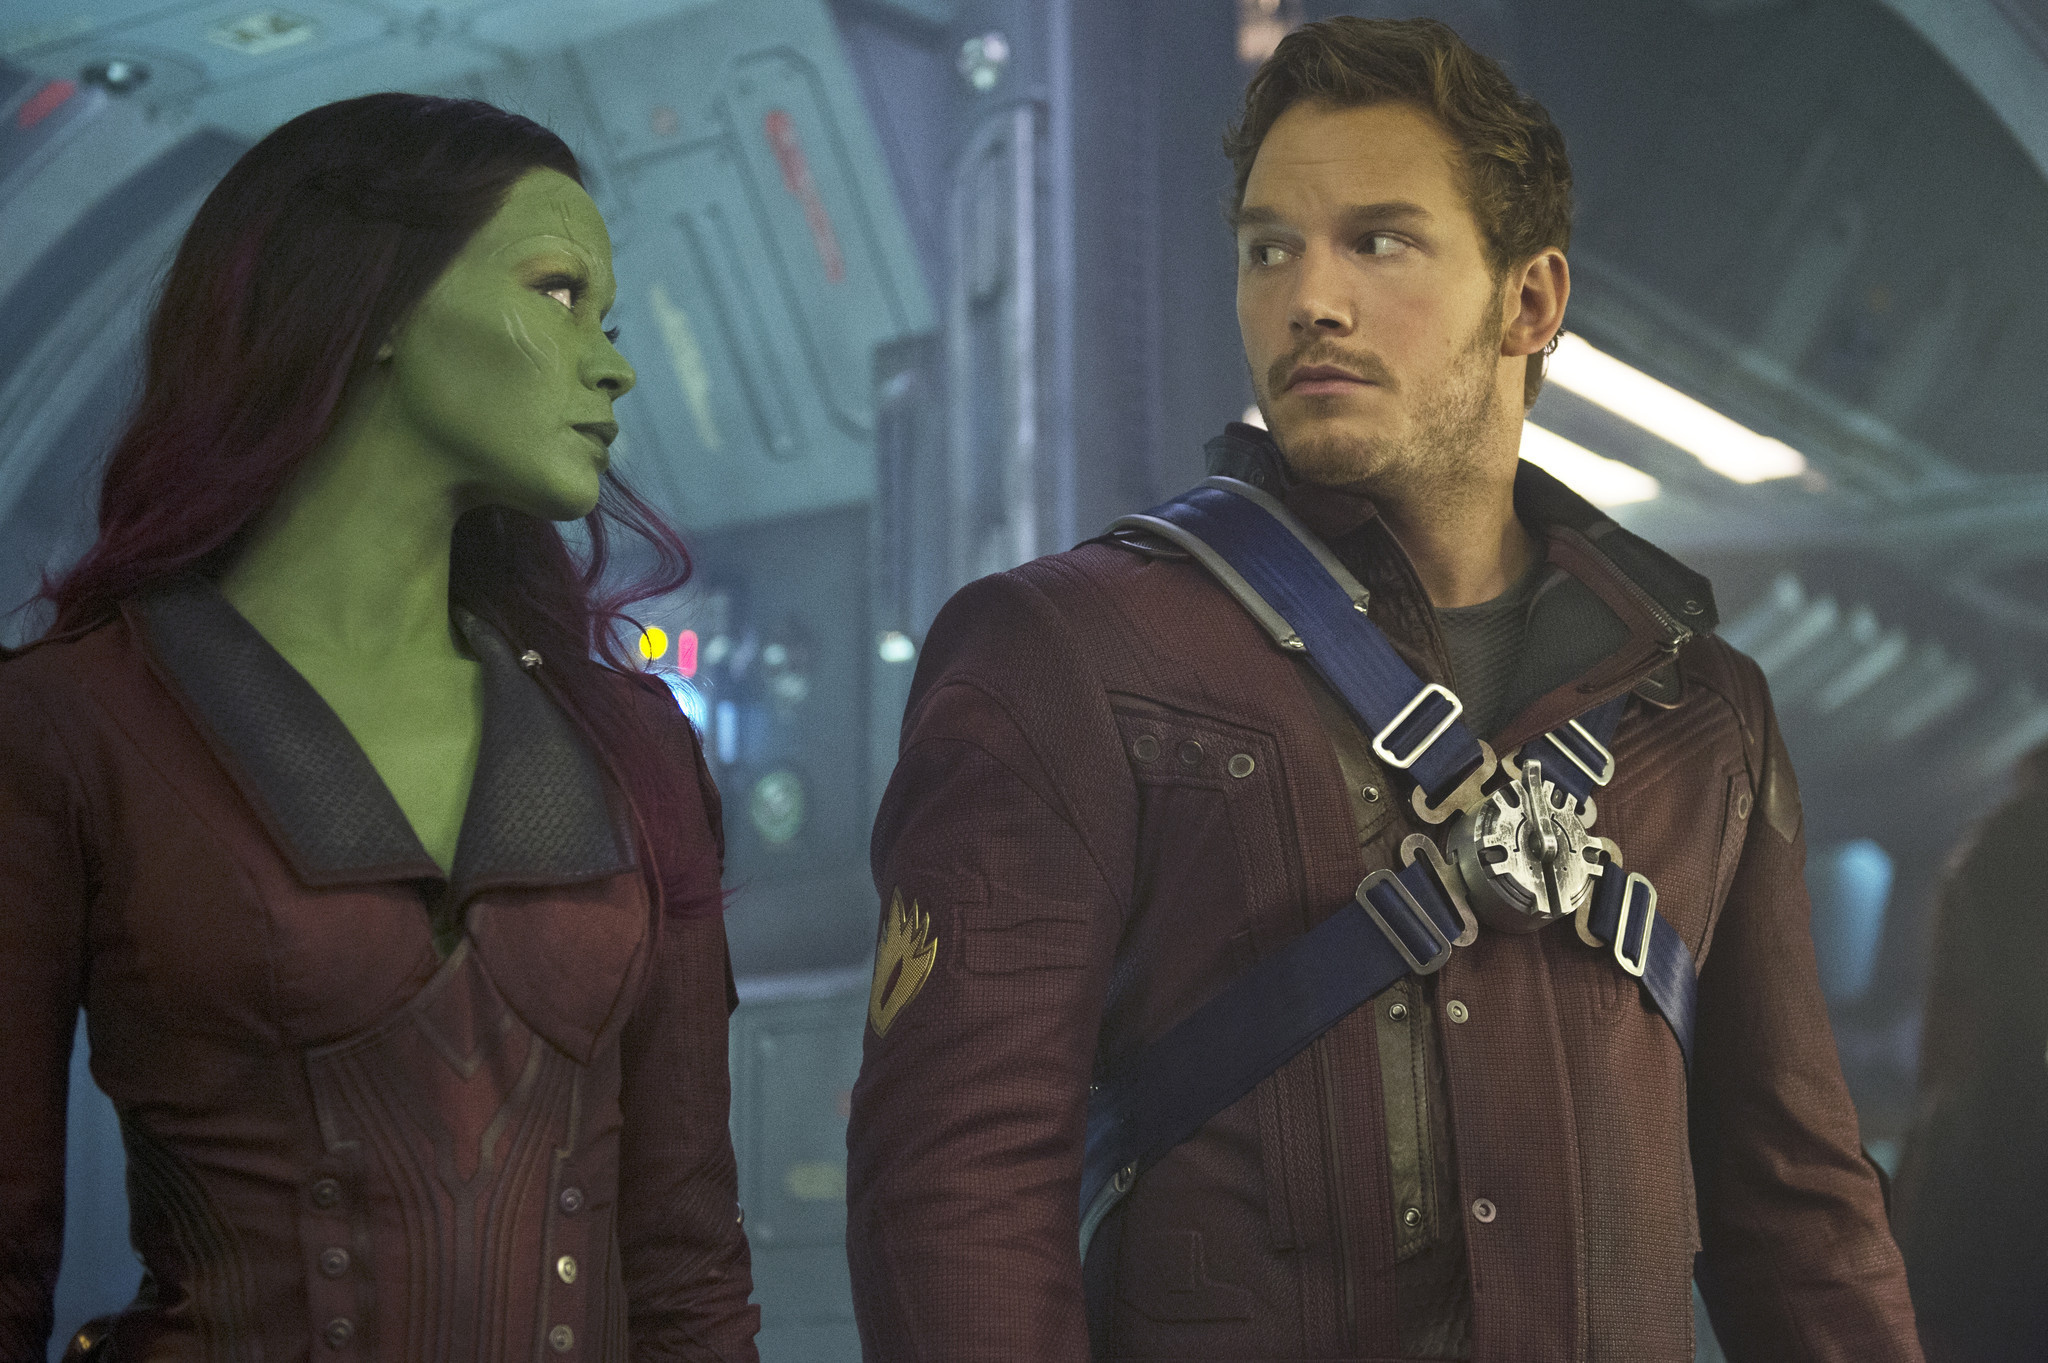 'Guardians of the Galaxy': Marvel's space opera gets stellar reviews